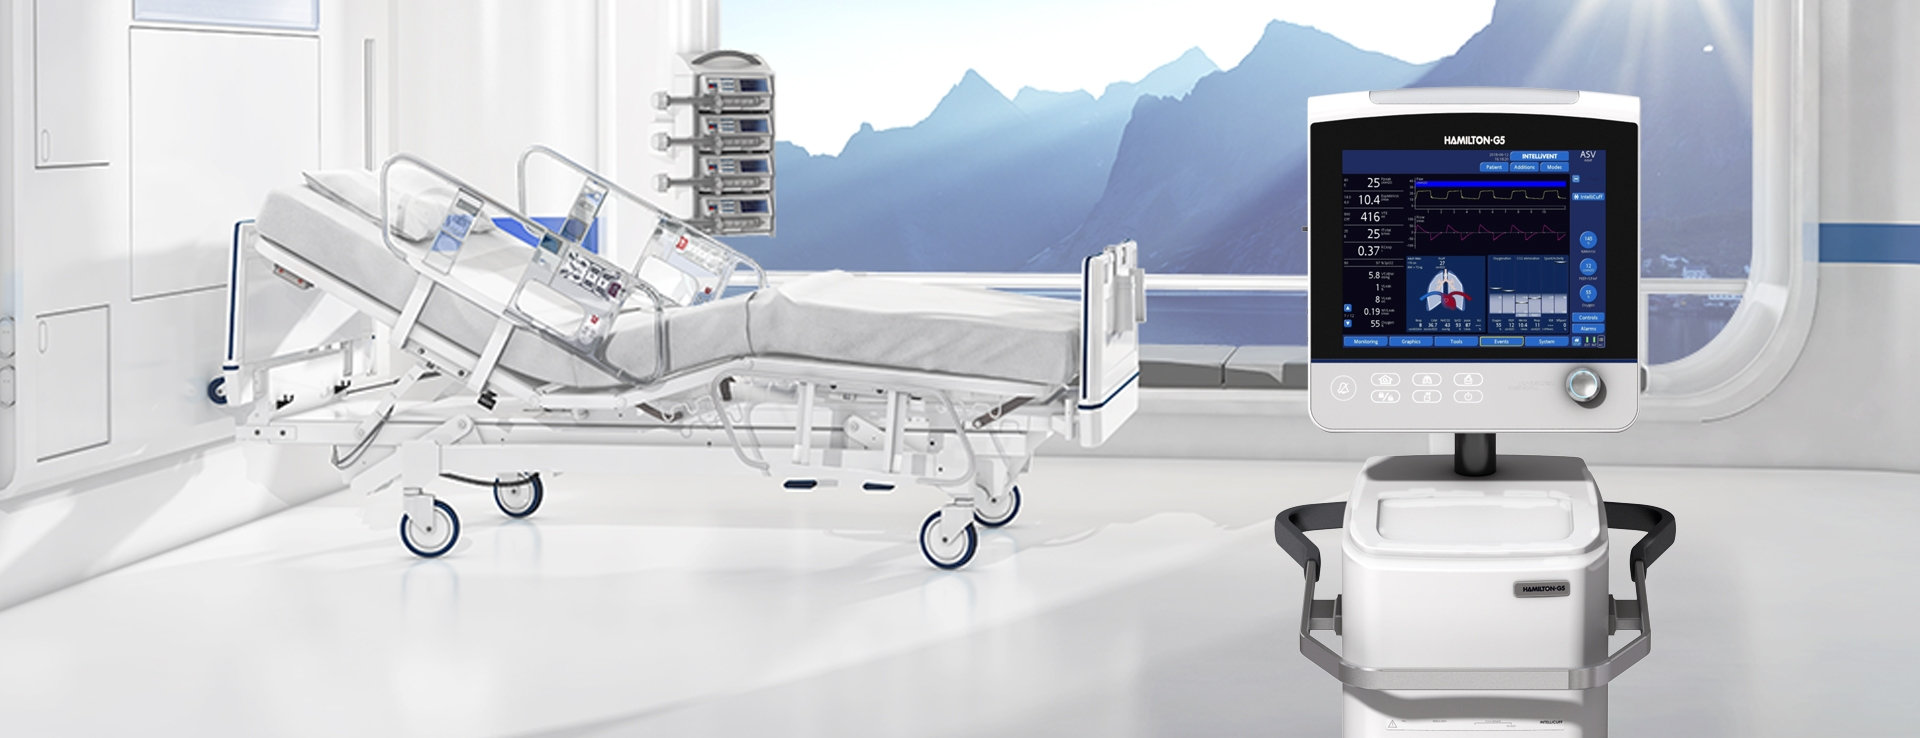 HAMILTON-G5 mechanical ventilator | Hamilton Medical